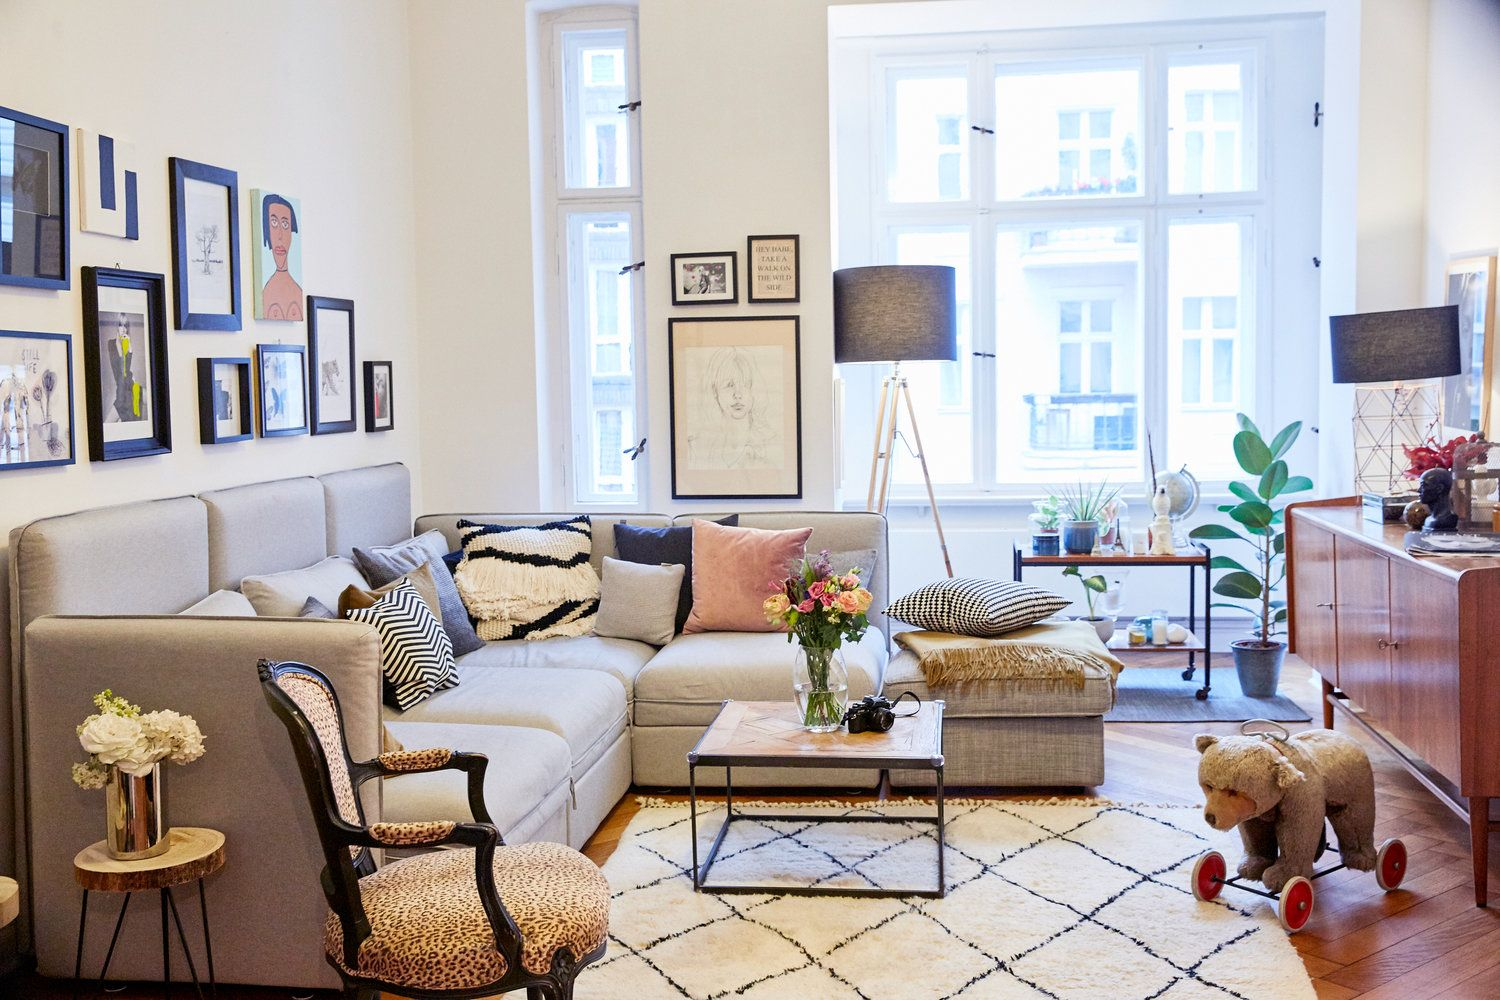 Couchtisch Miriam Homestory Zuhause Bei Miriam Jacks Ideas For Studio Pinterest